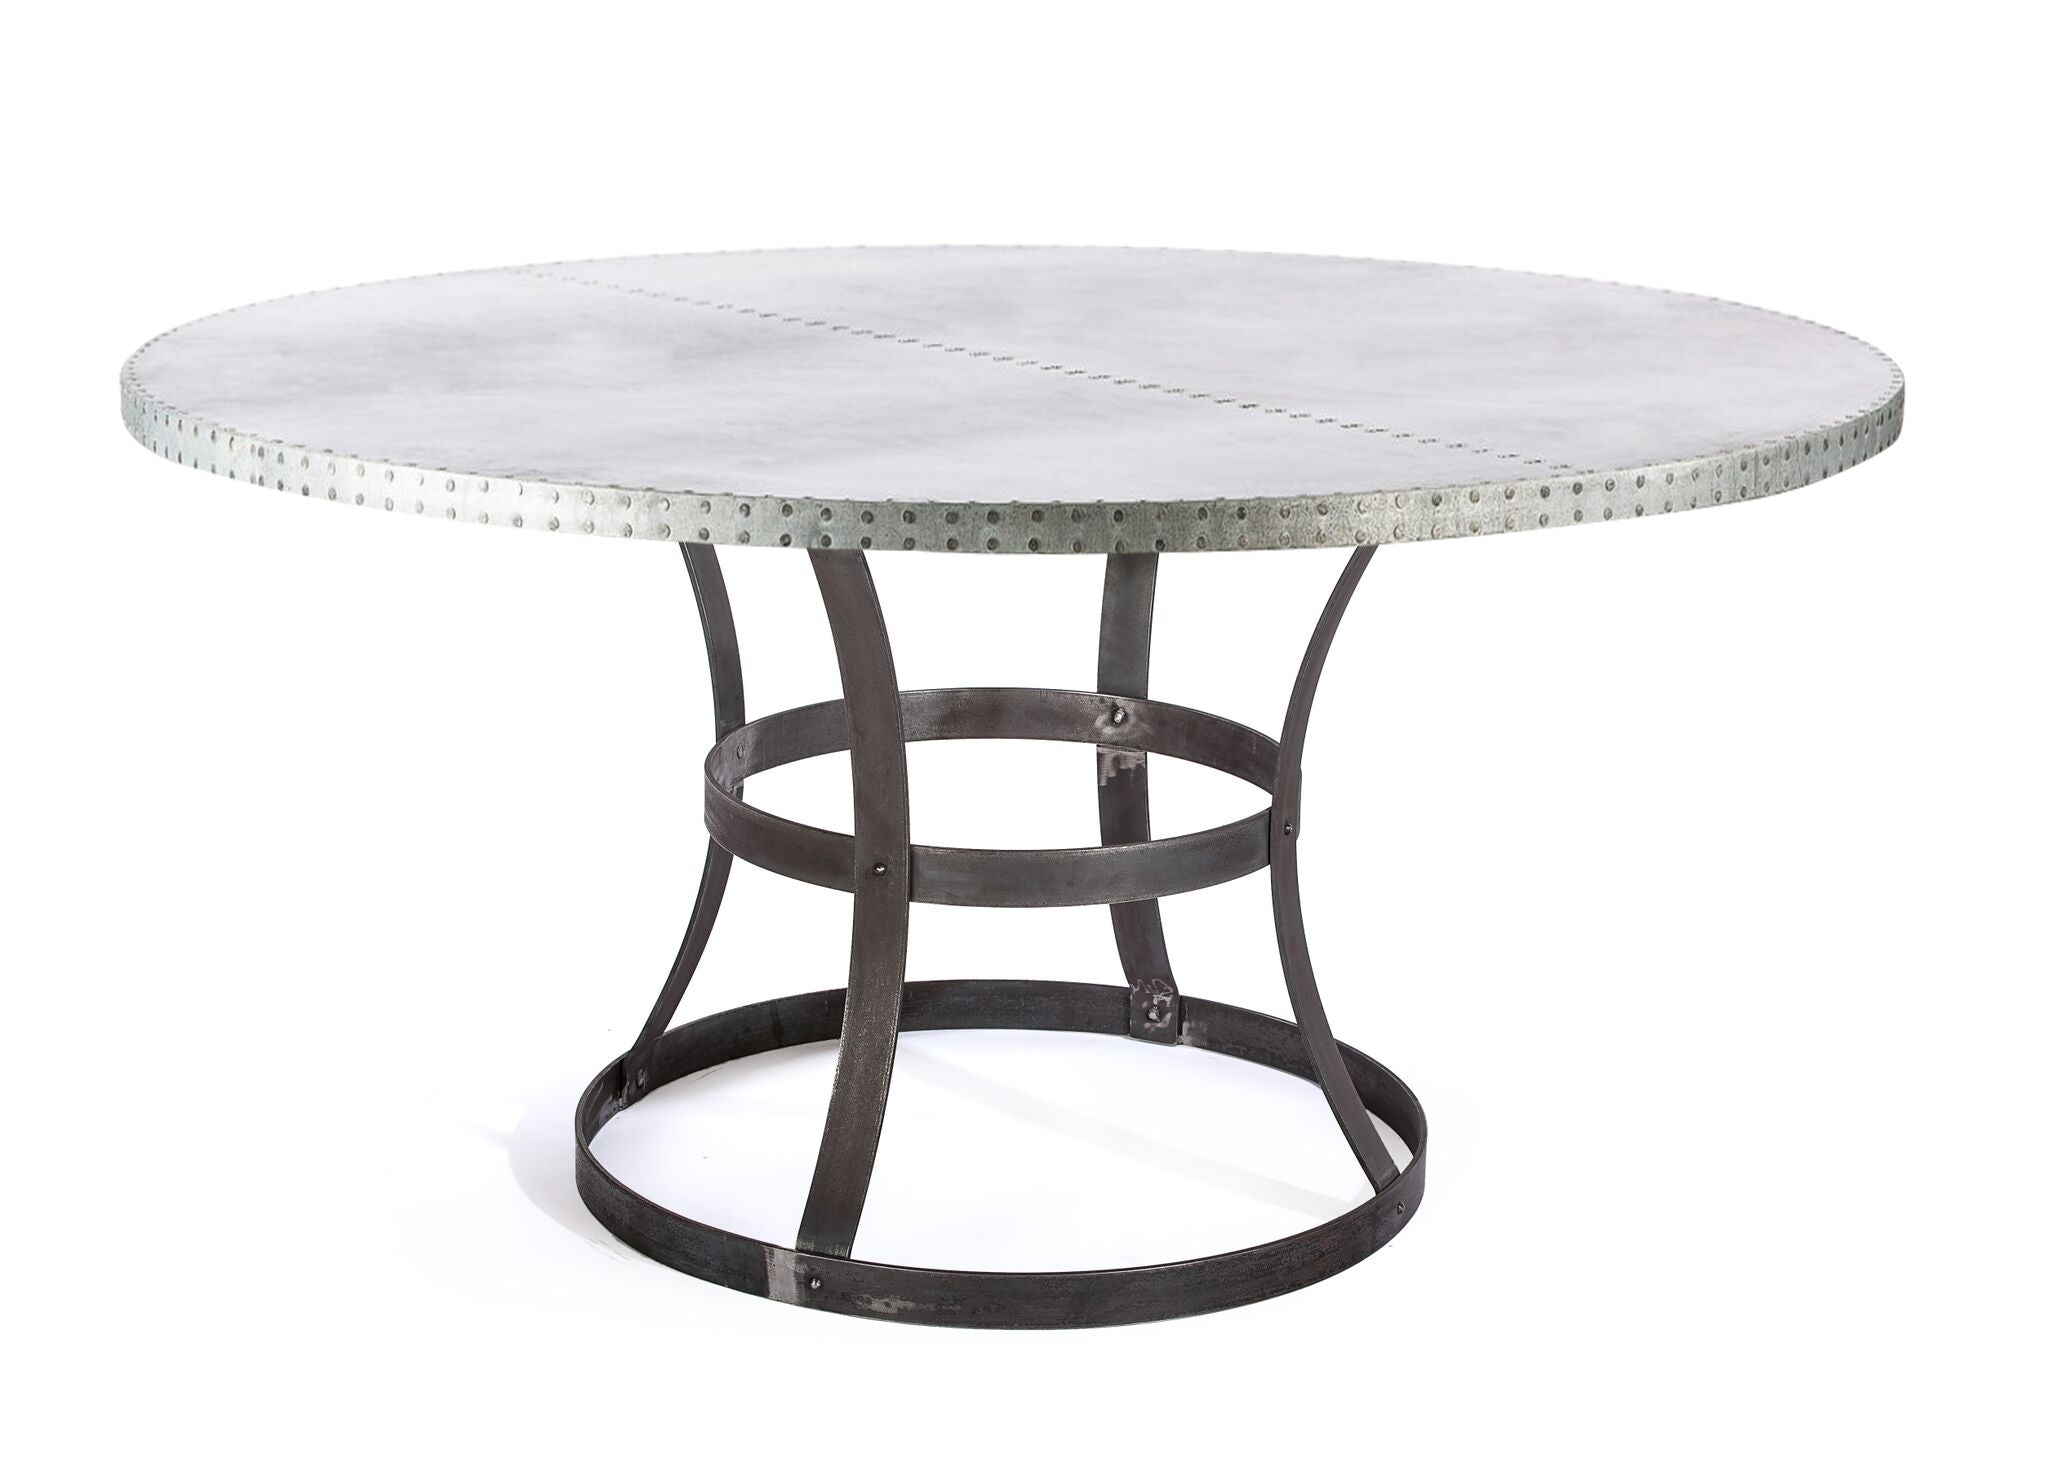 Zinc Round Tables | Madera Table | CLASSIC | Natural Steel | CUSTOM SIZE D 48 H 30 | 2"